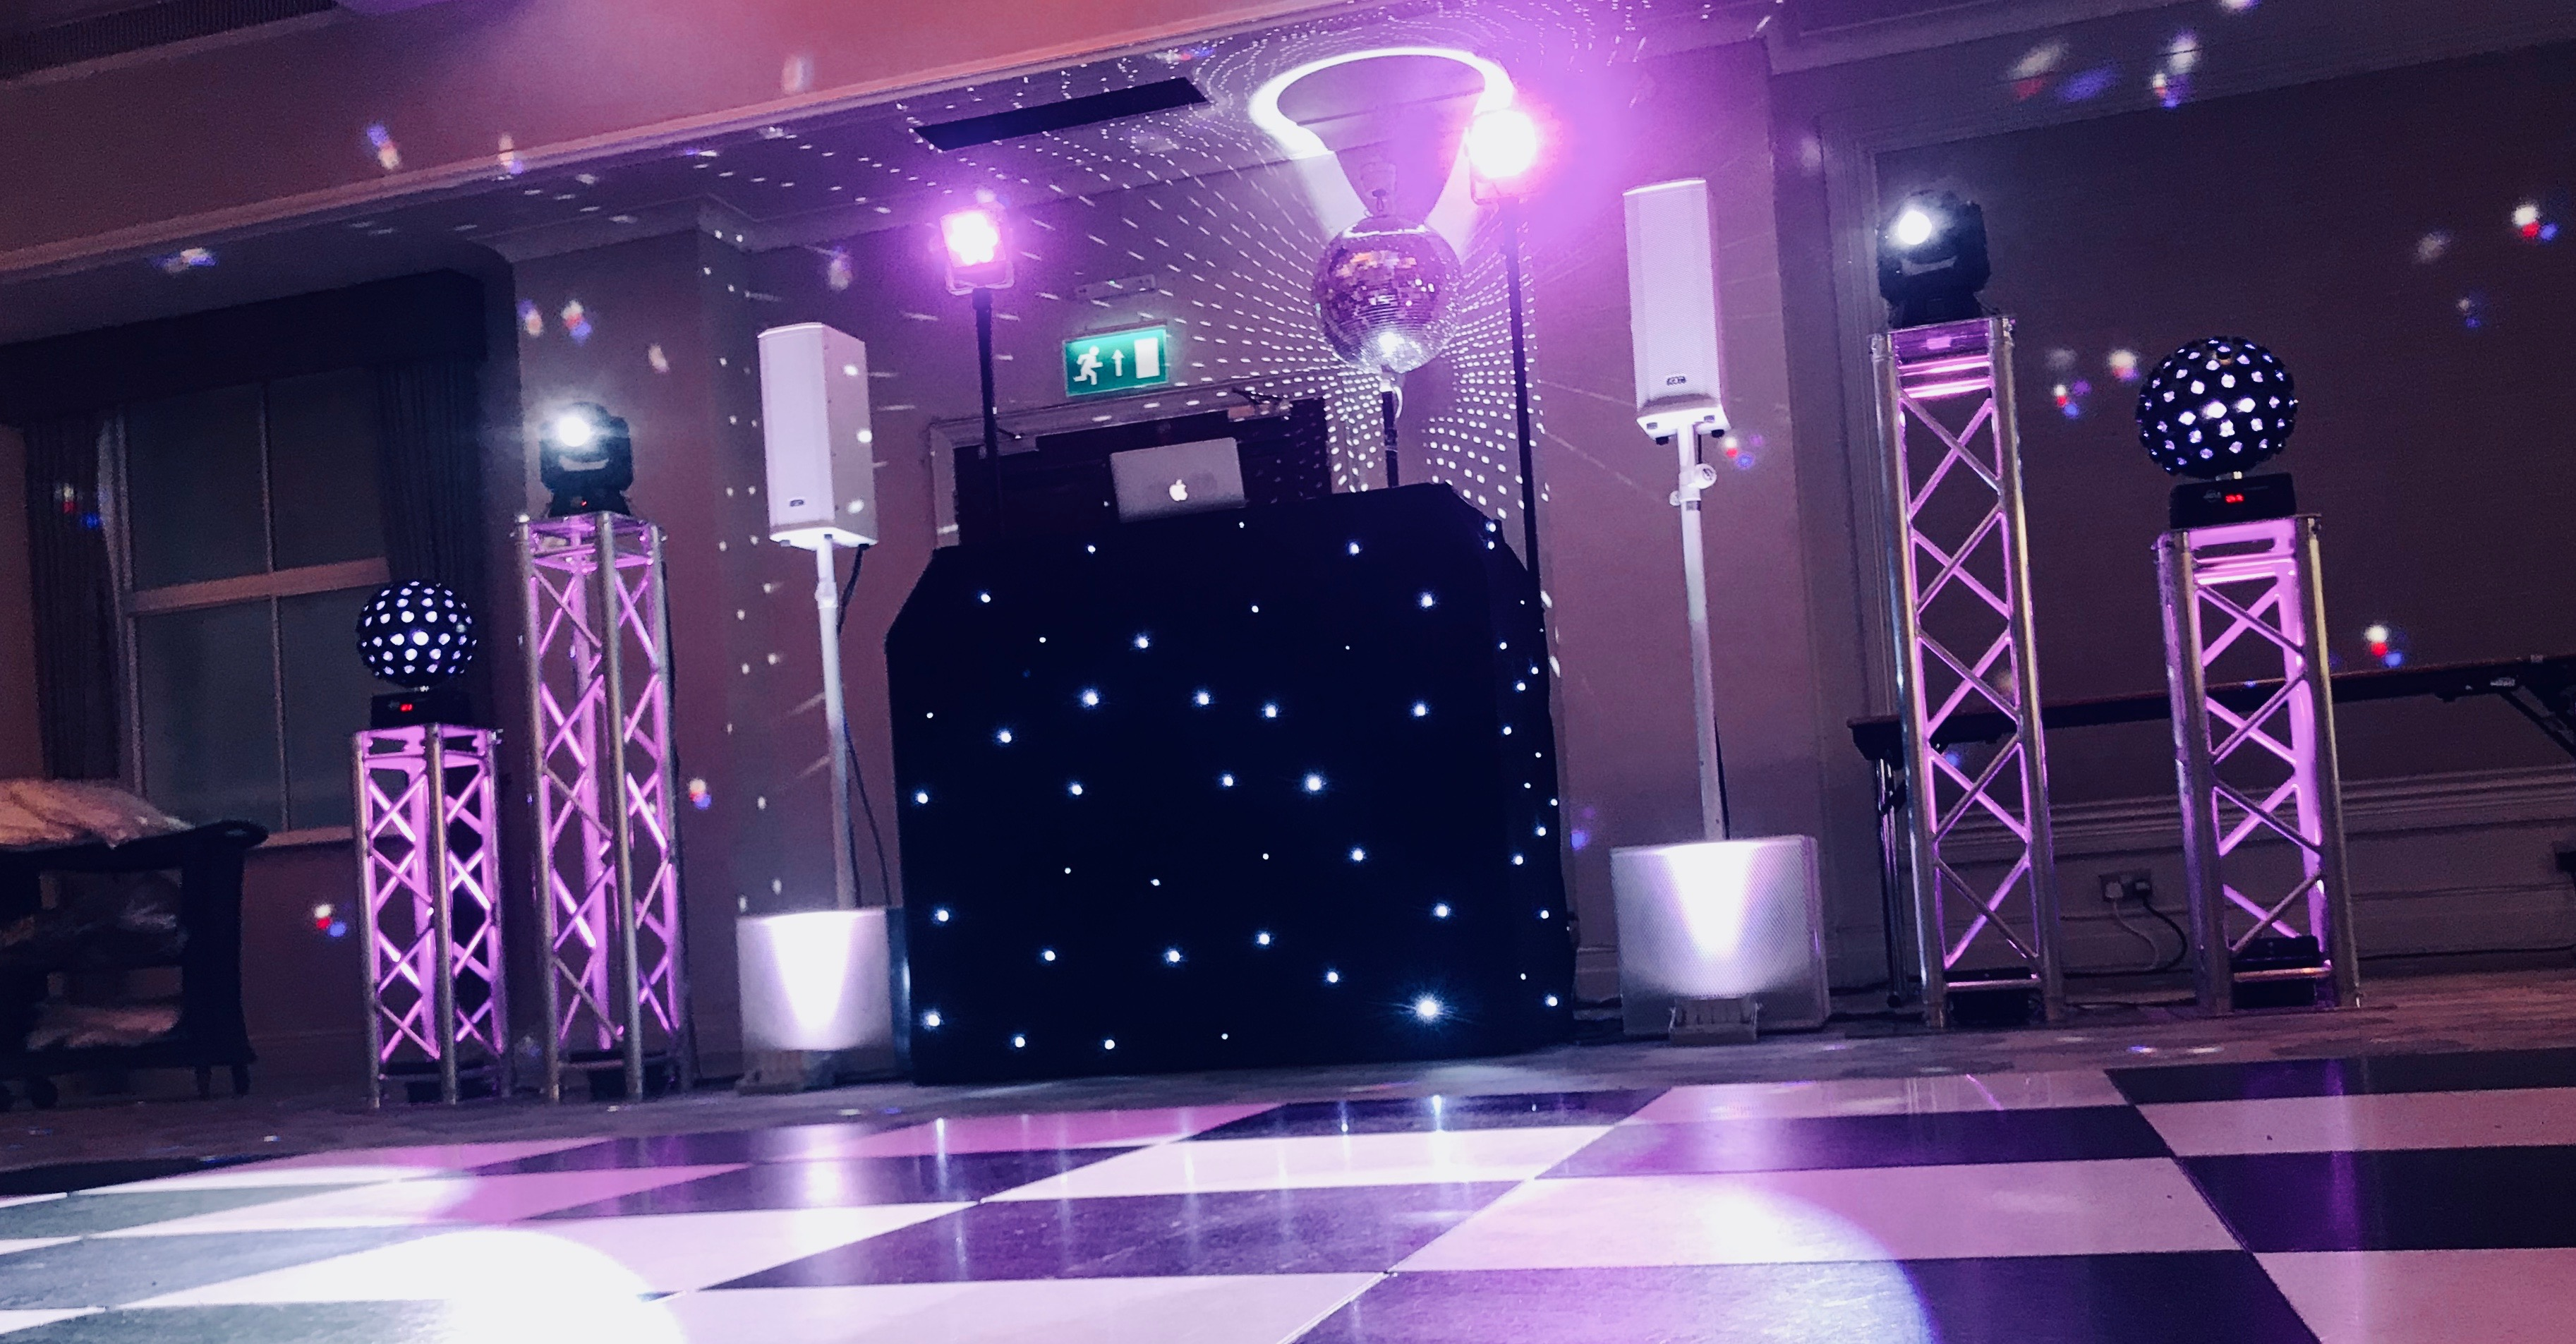 DJ booth with lighting shot from the dance floor